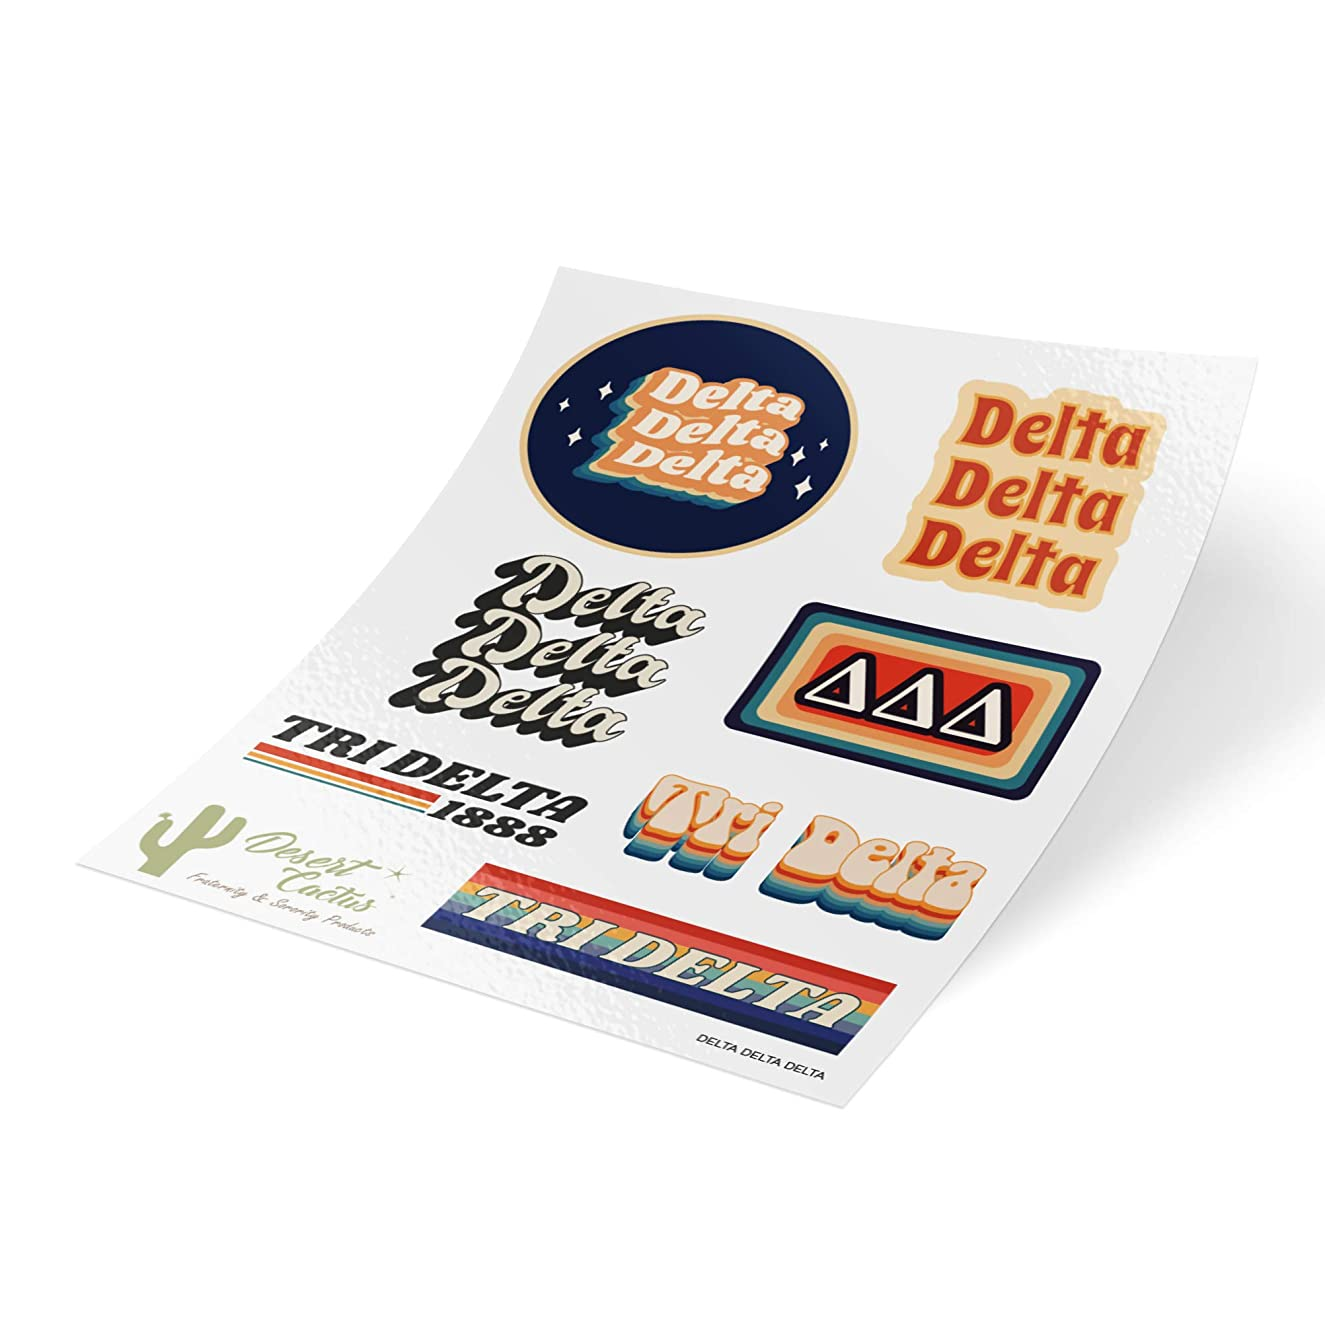 Delta Delta Delta 70's Themed Sticker Sheet Decal Laptop Water Bottle Car tri Delta (Full Sheet - 70's)